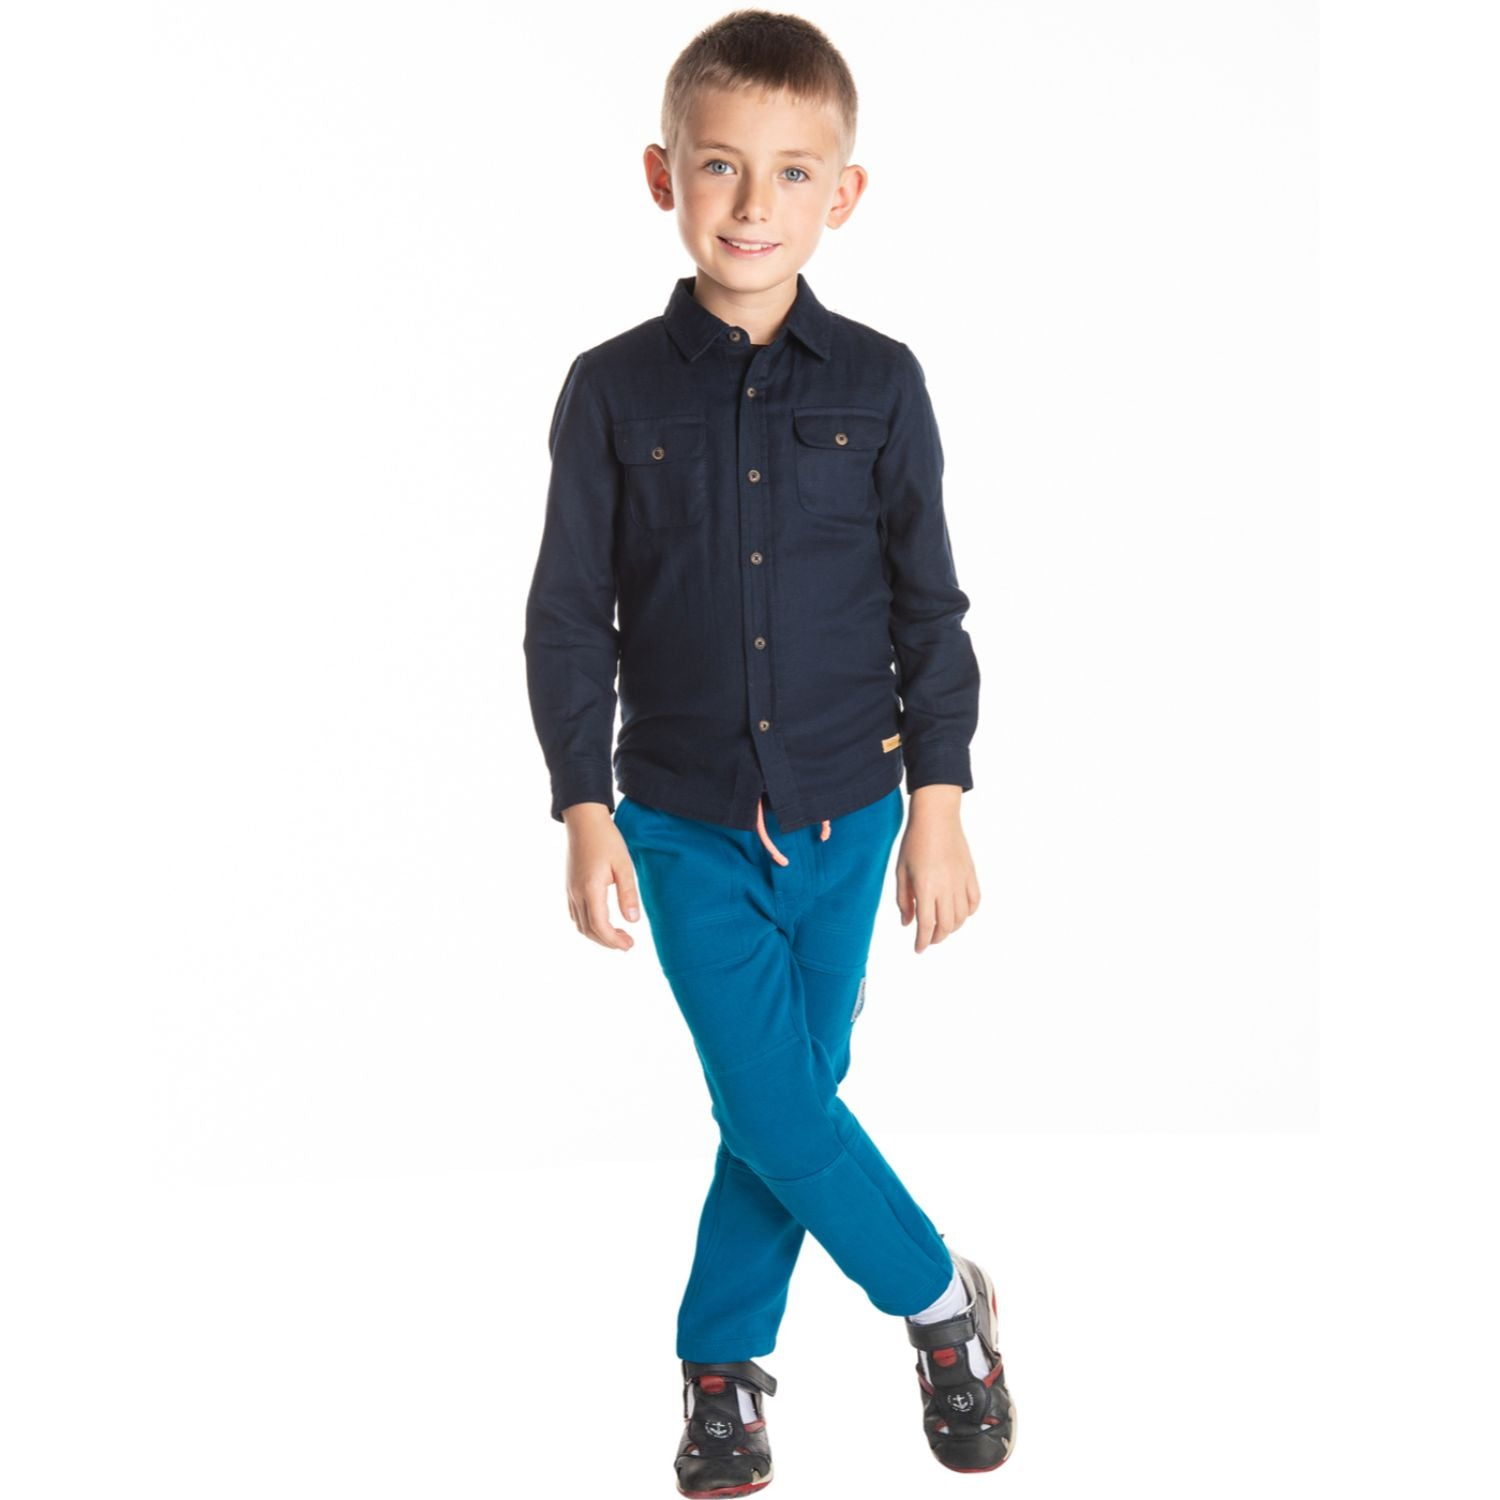 Walker Shirt for Boys